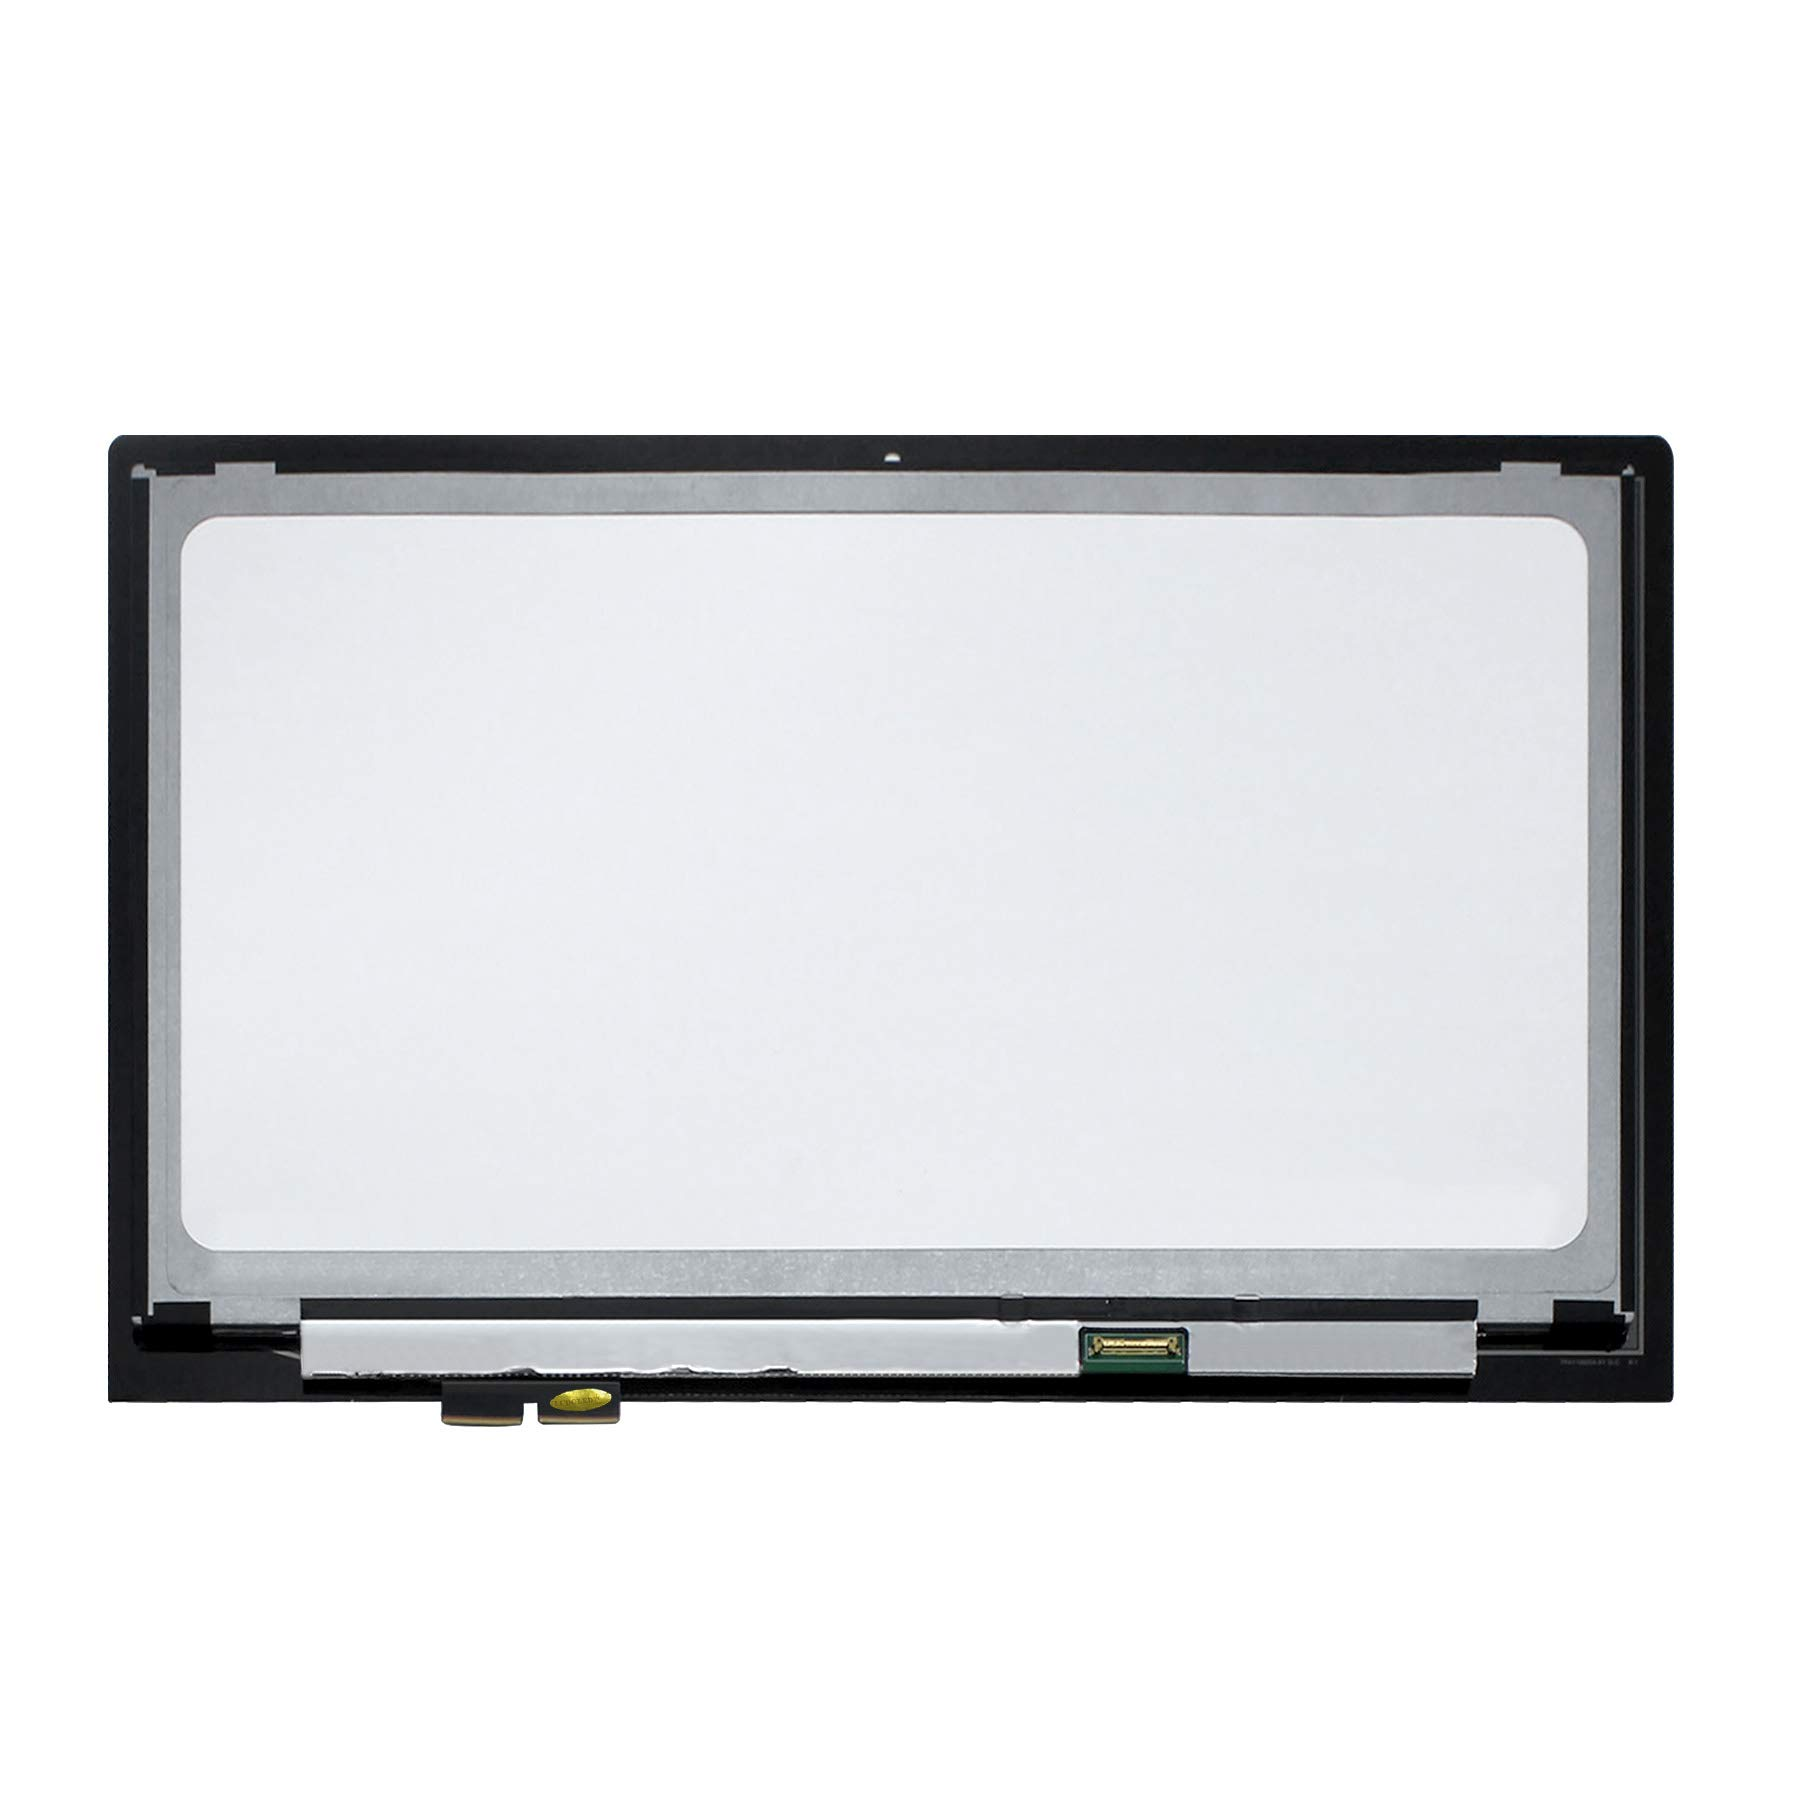 inoneworld 15.6 1920x1080 Touch Screen Panel Digitizer Front Glass LCD//LED Display Screen Replacement Assembly with Frame for Lenovo Yoga 710-15IKB